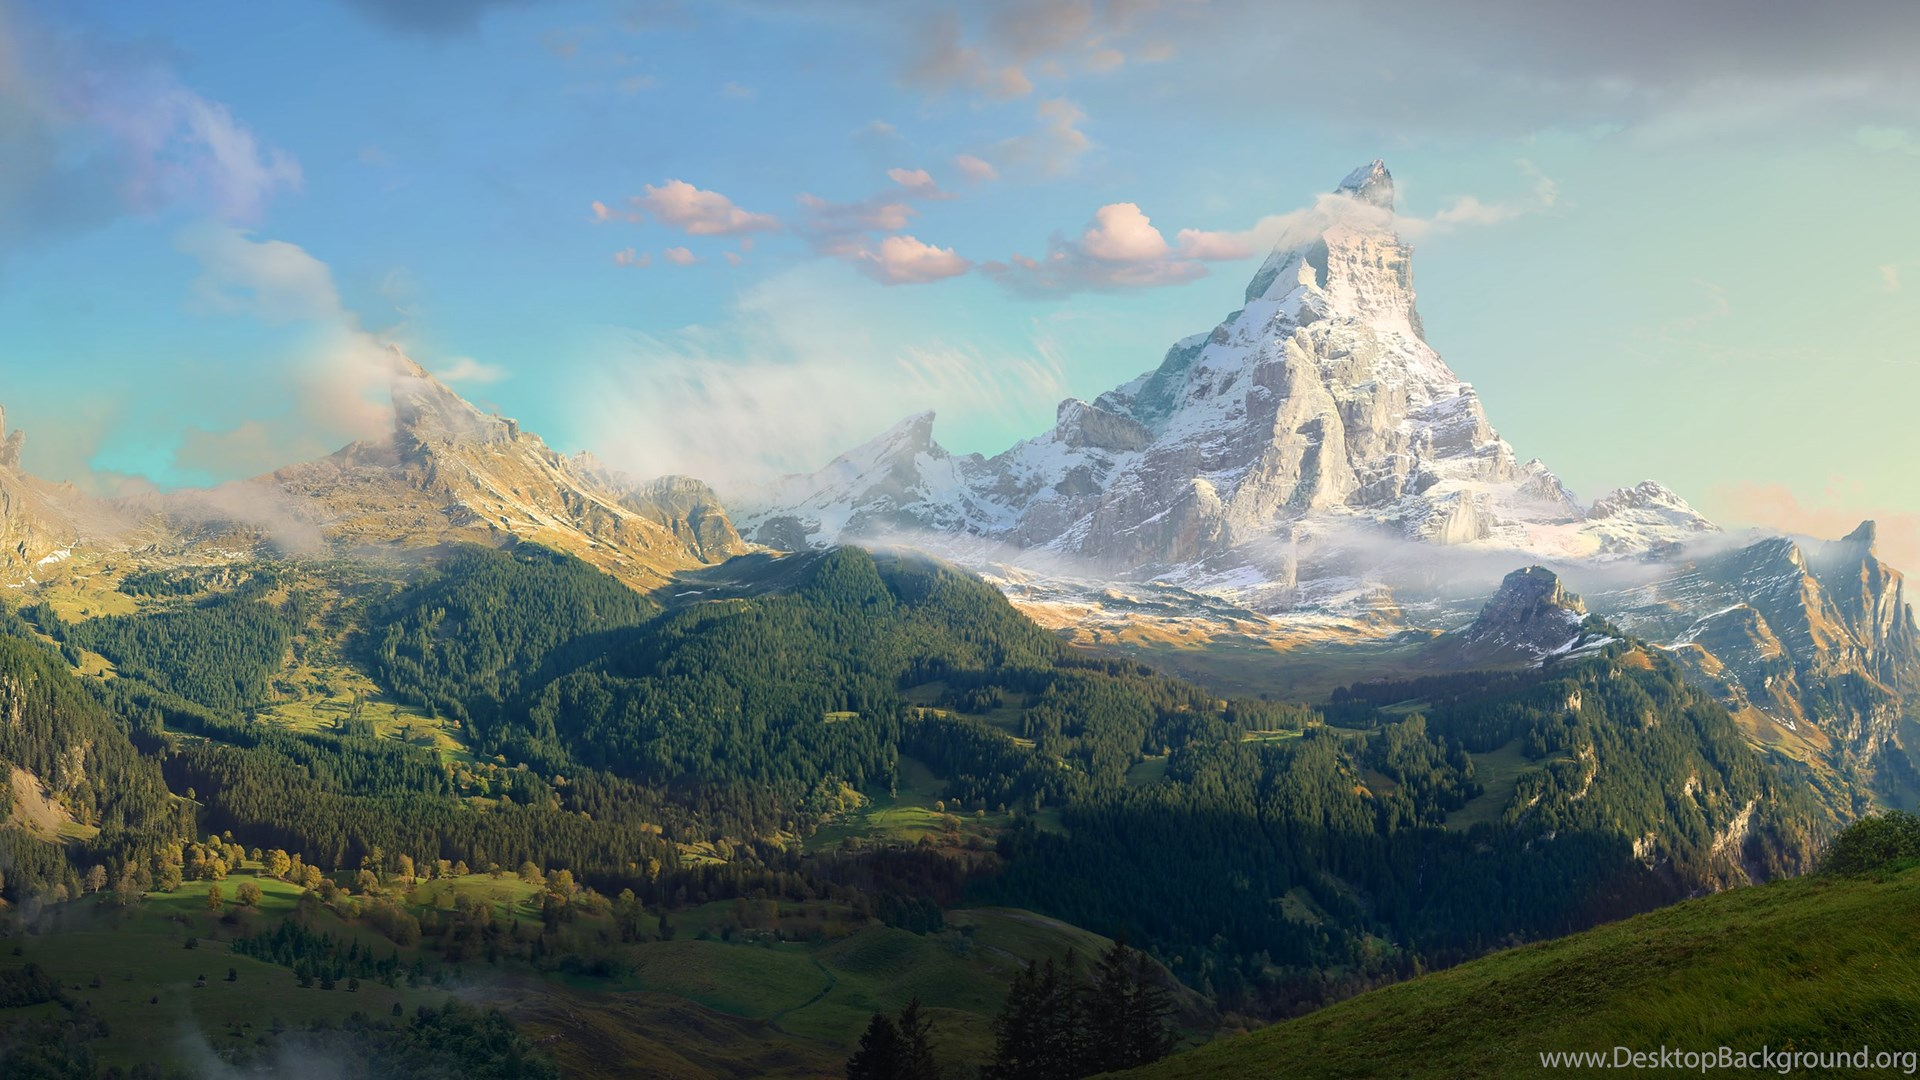 The Lonely Mountain By Daniel Romanovsky Imaginarywildlands Images, Photos, Reviews